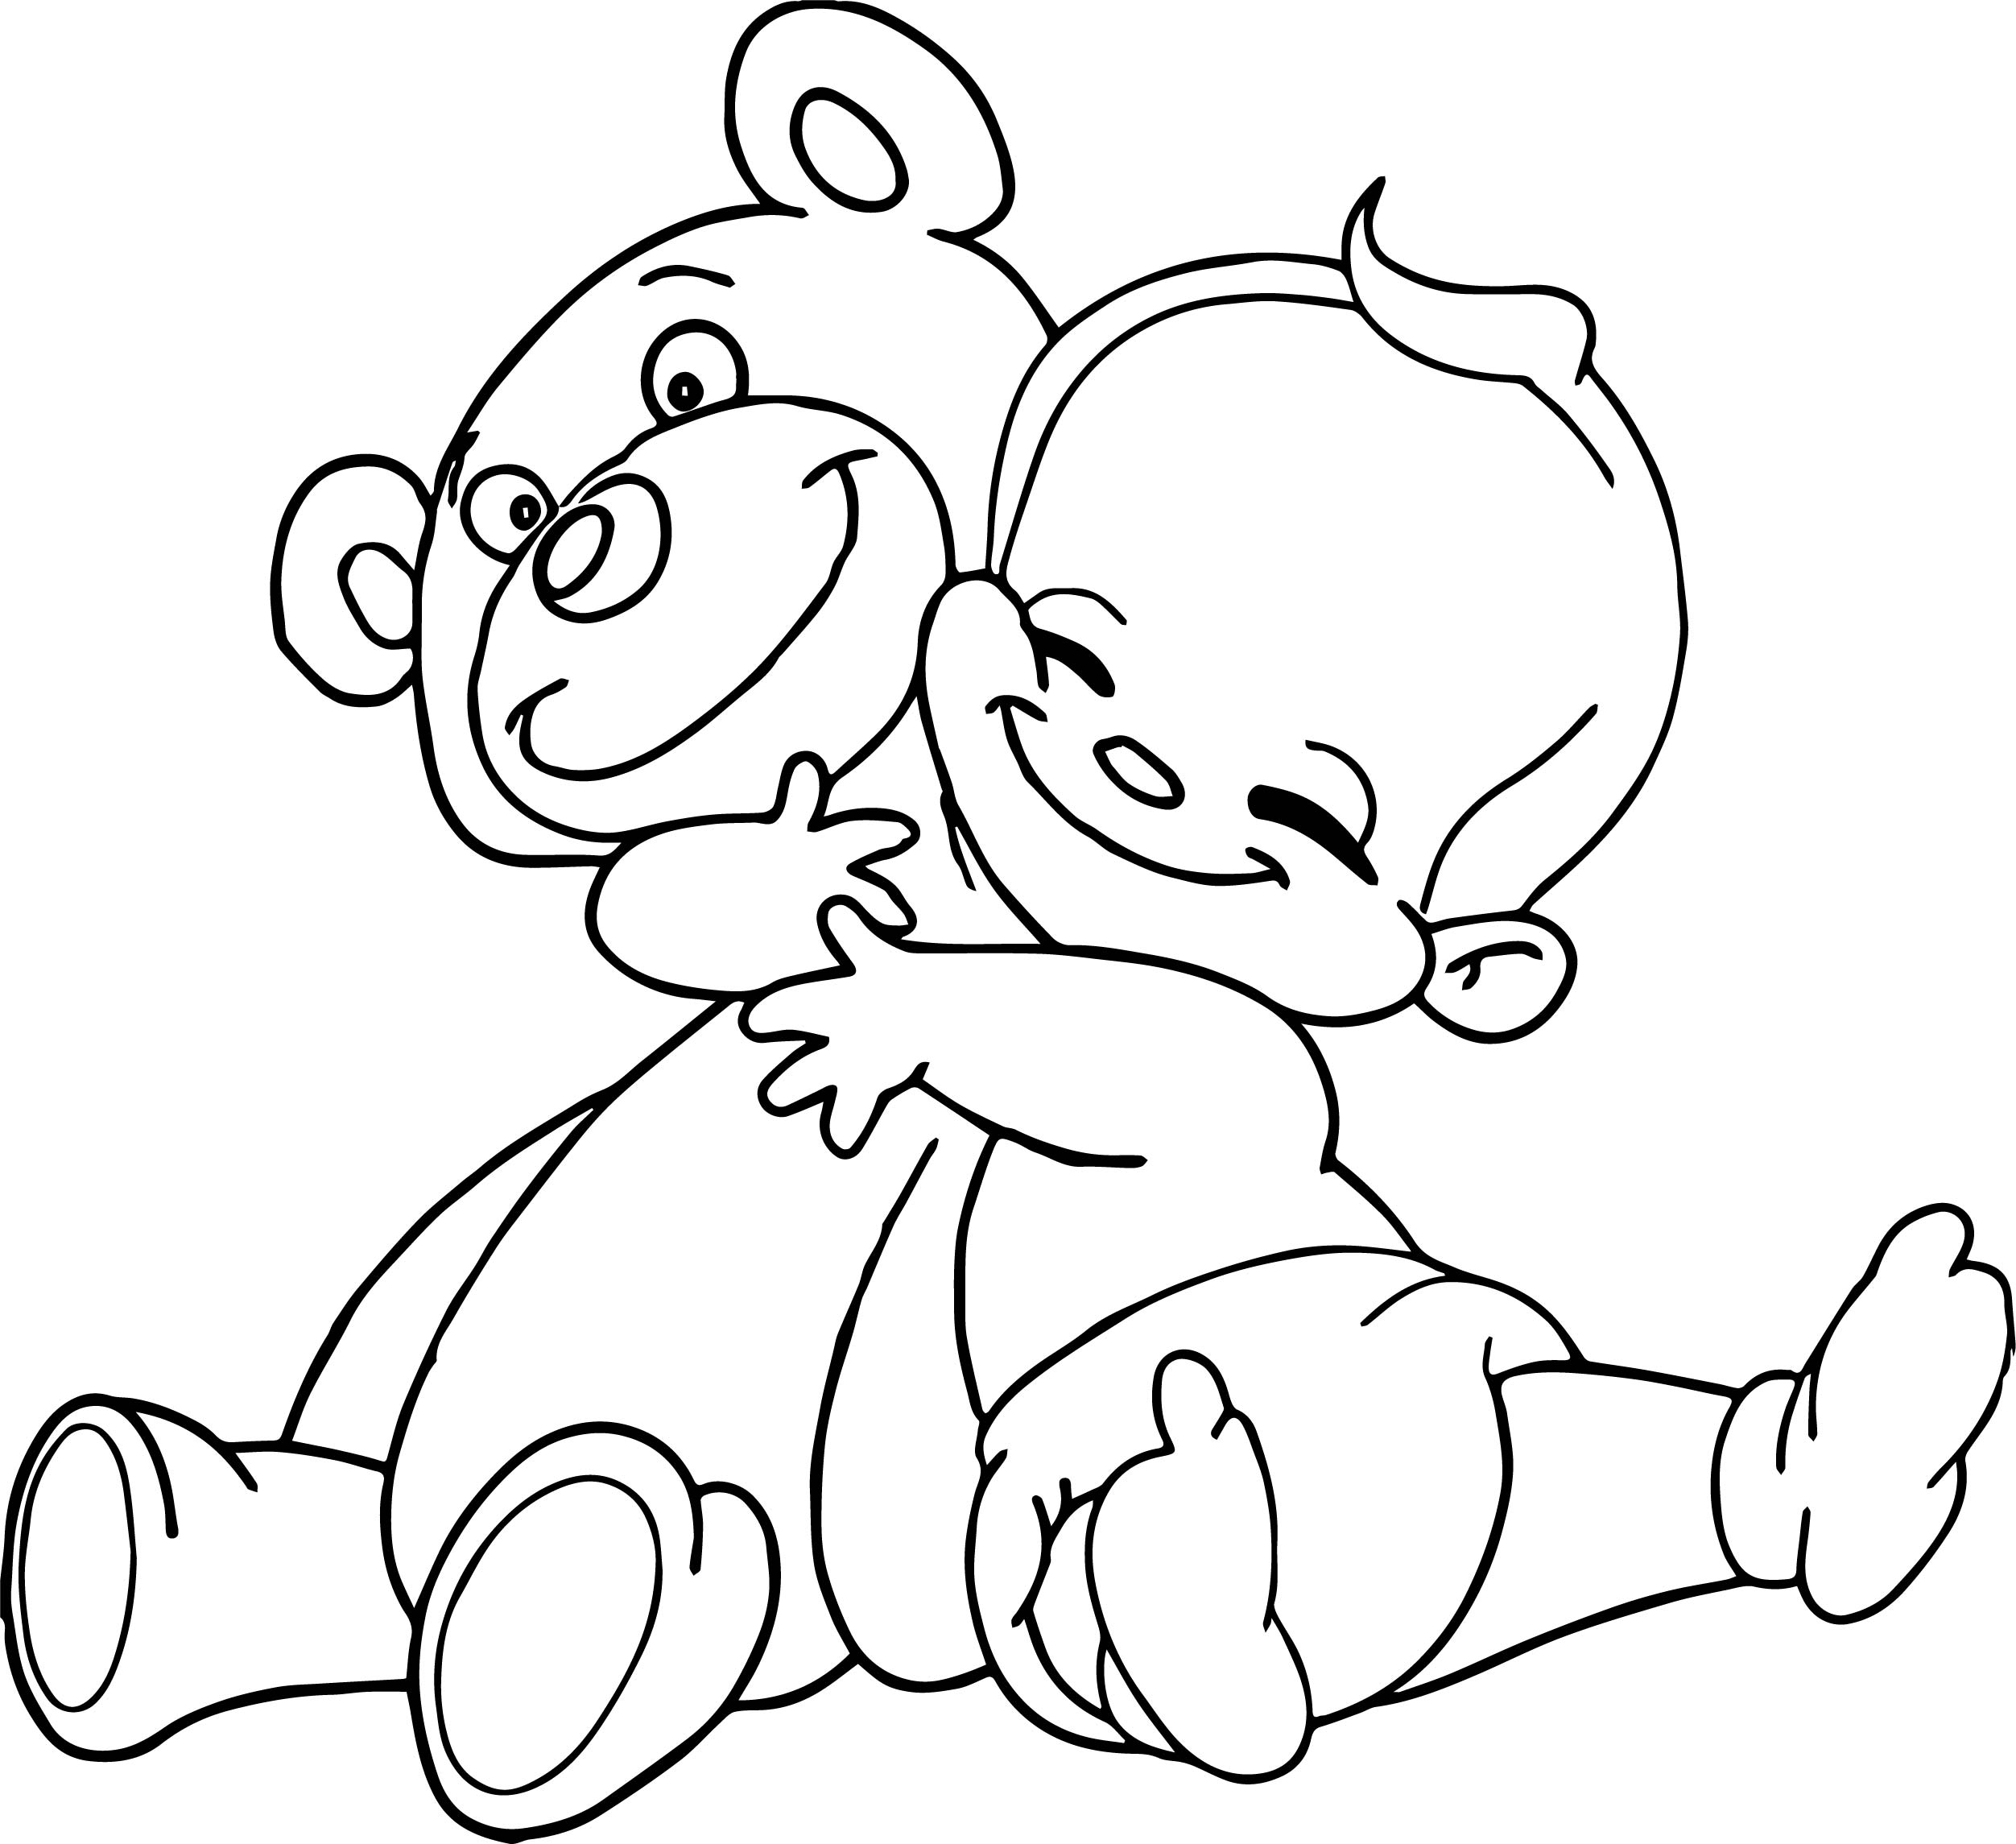 85+ [ Coloring Pages For Baby Boy ] - Precious Moments ...